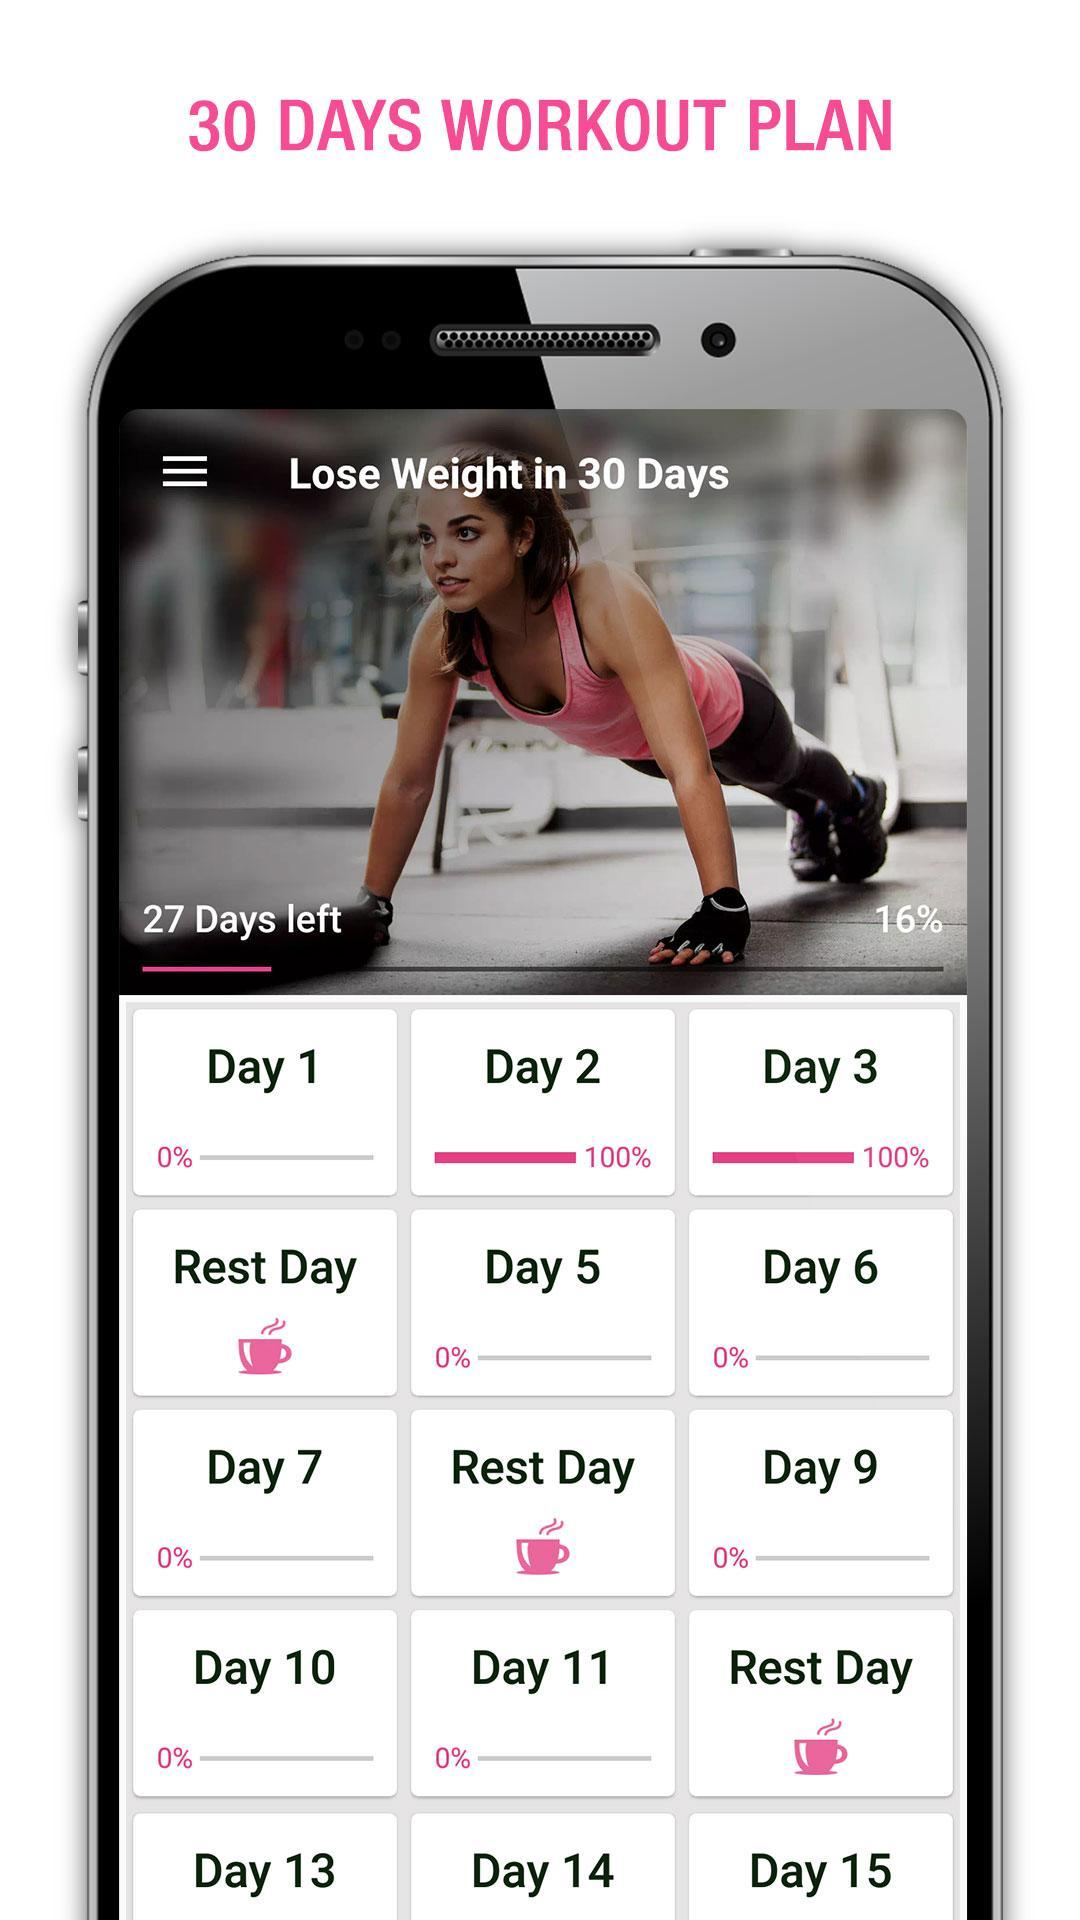 Weight Loss Workout for Women, Lose Weight 30 Days for